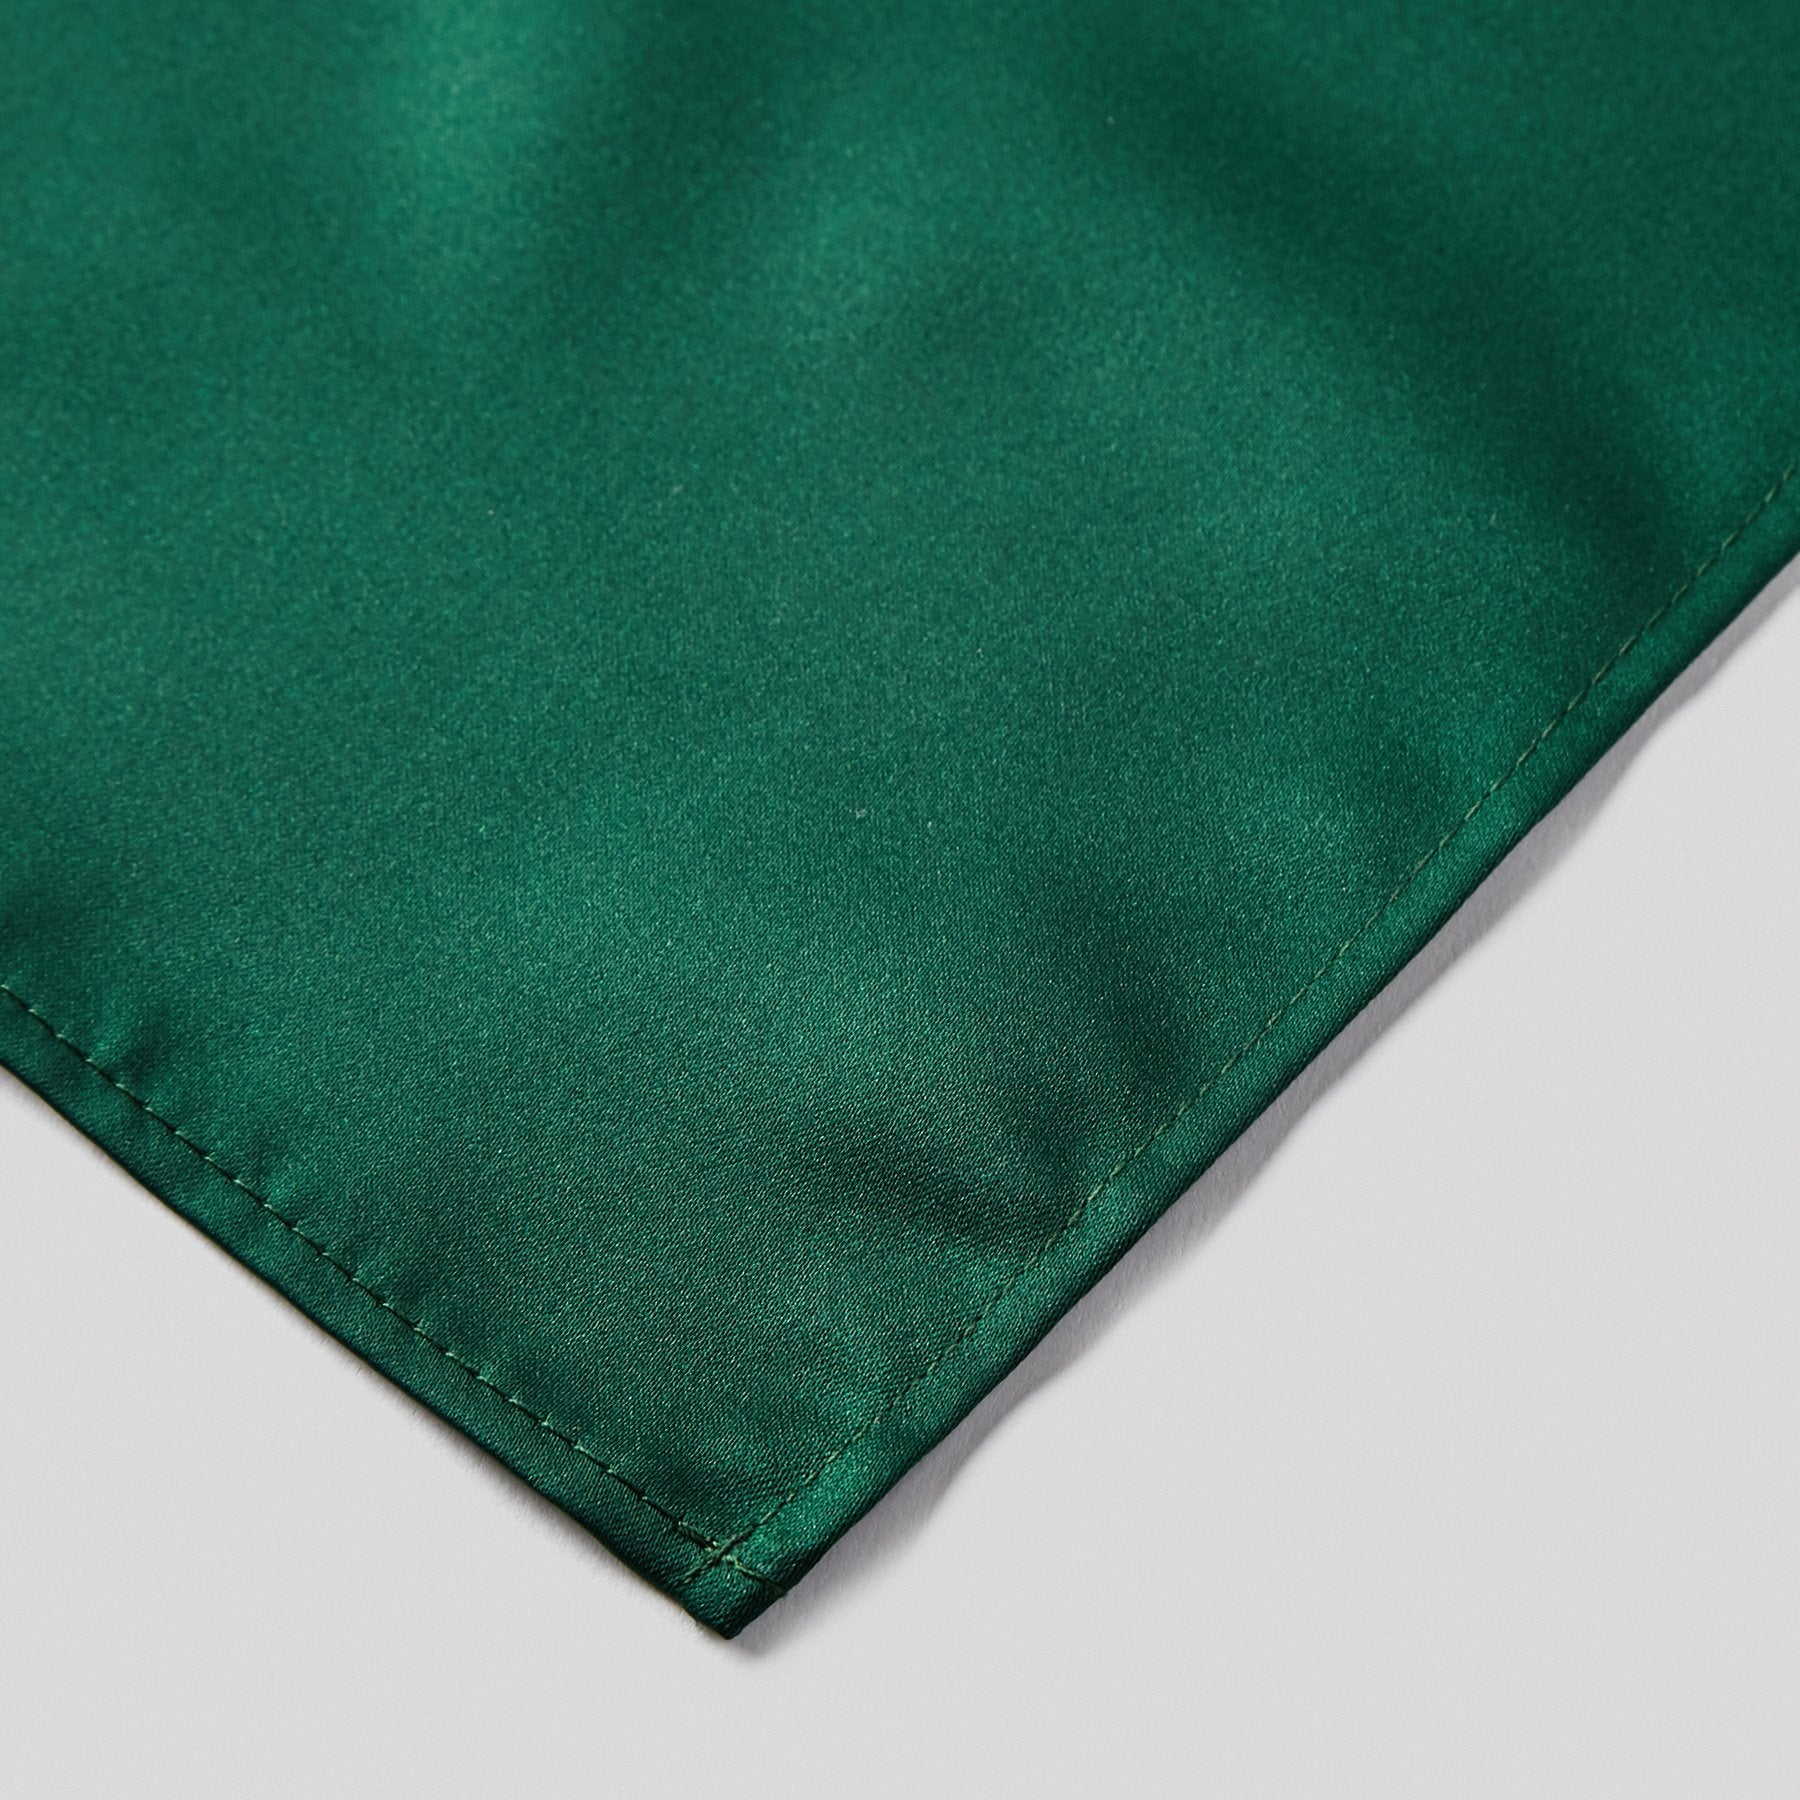 HA0030-09-Folkespeare-Bottle-Green-Satin-Pocket-Square-3